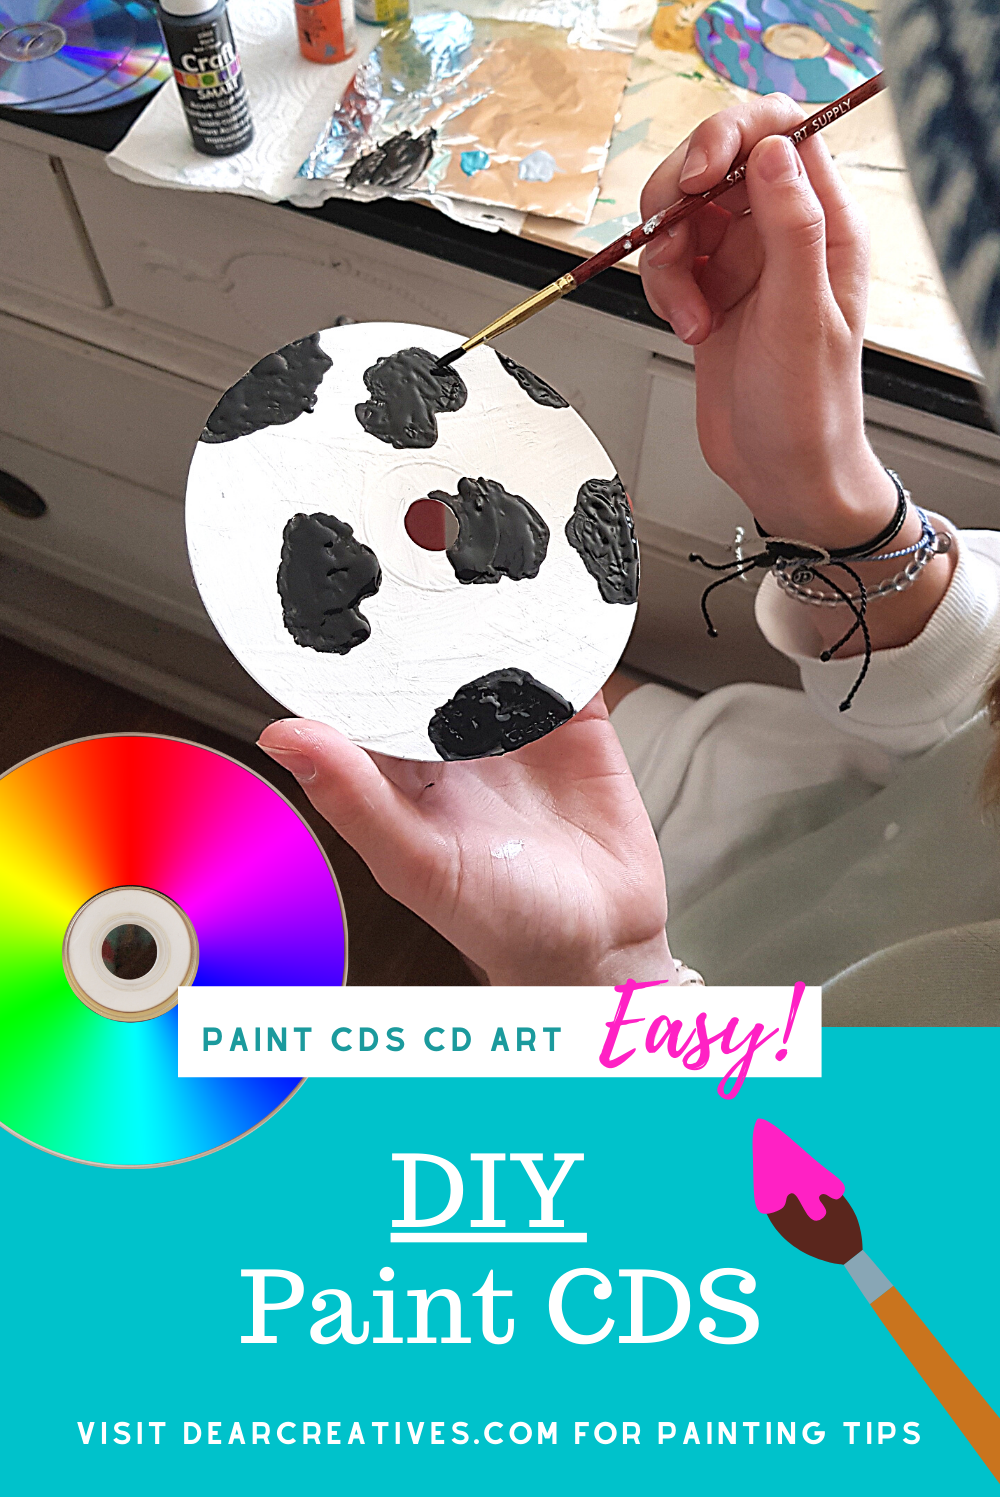 Paint CDs – Tips, Ideas, And How To!